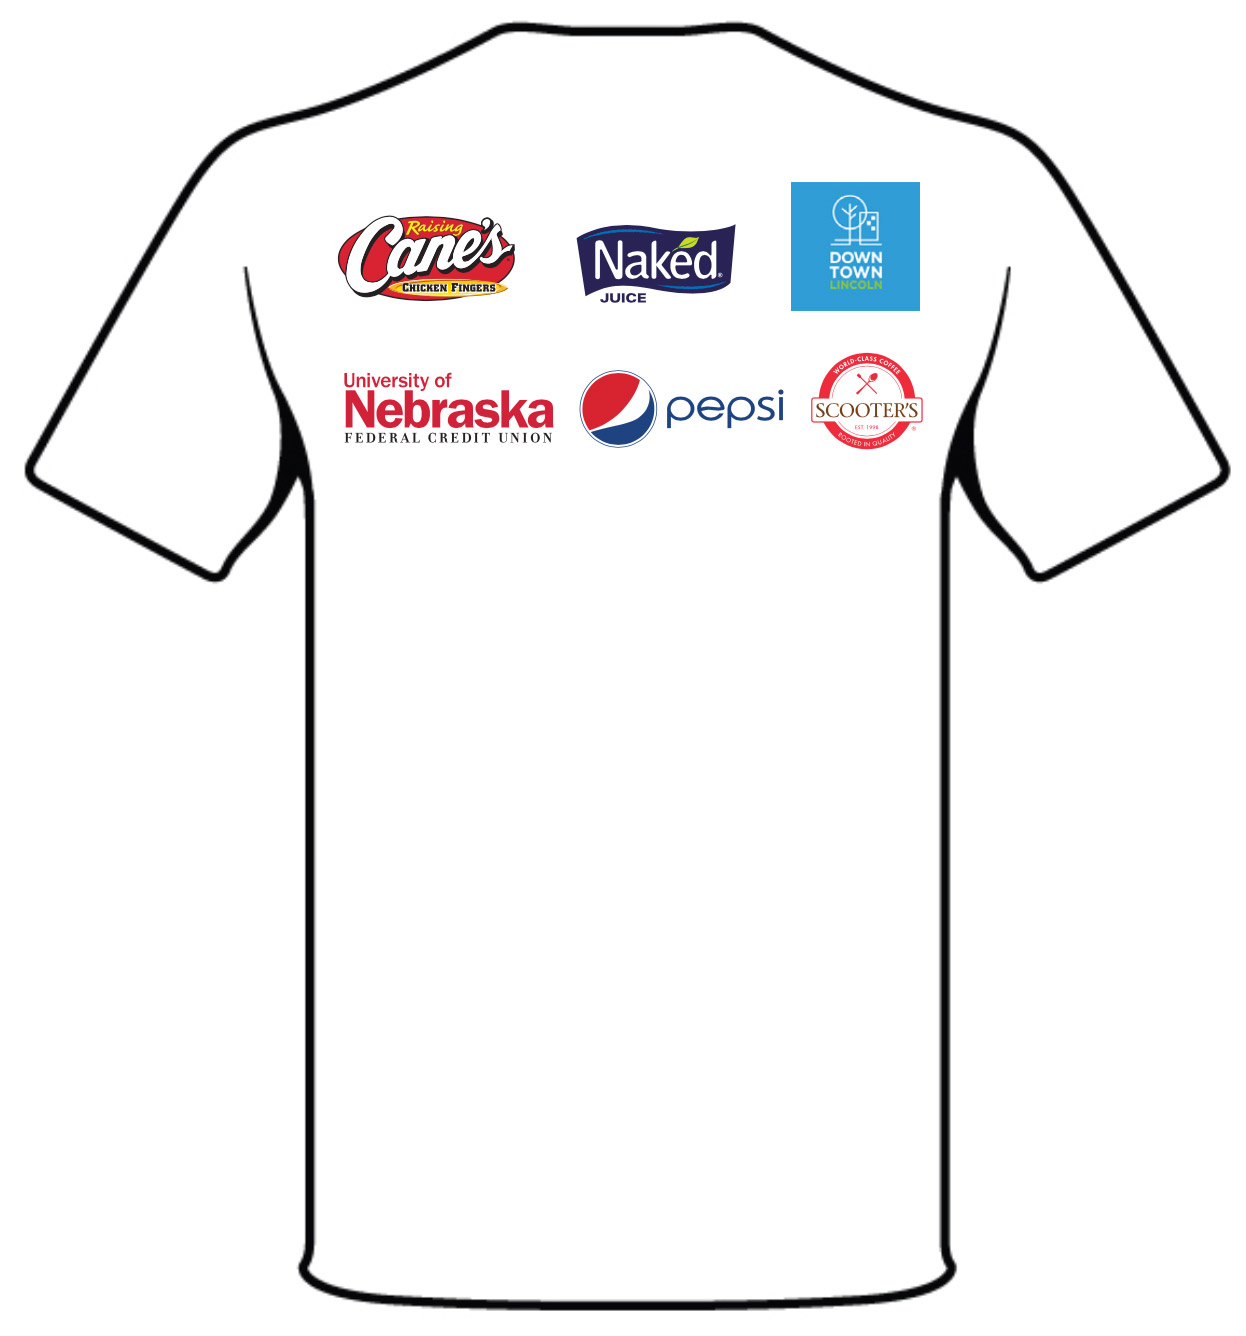 Back of t-shirt showing sponsor logos